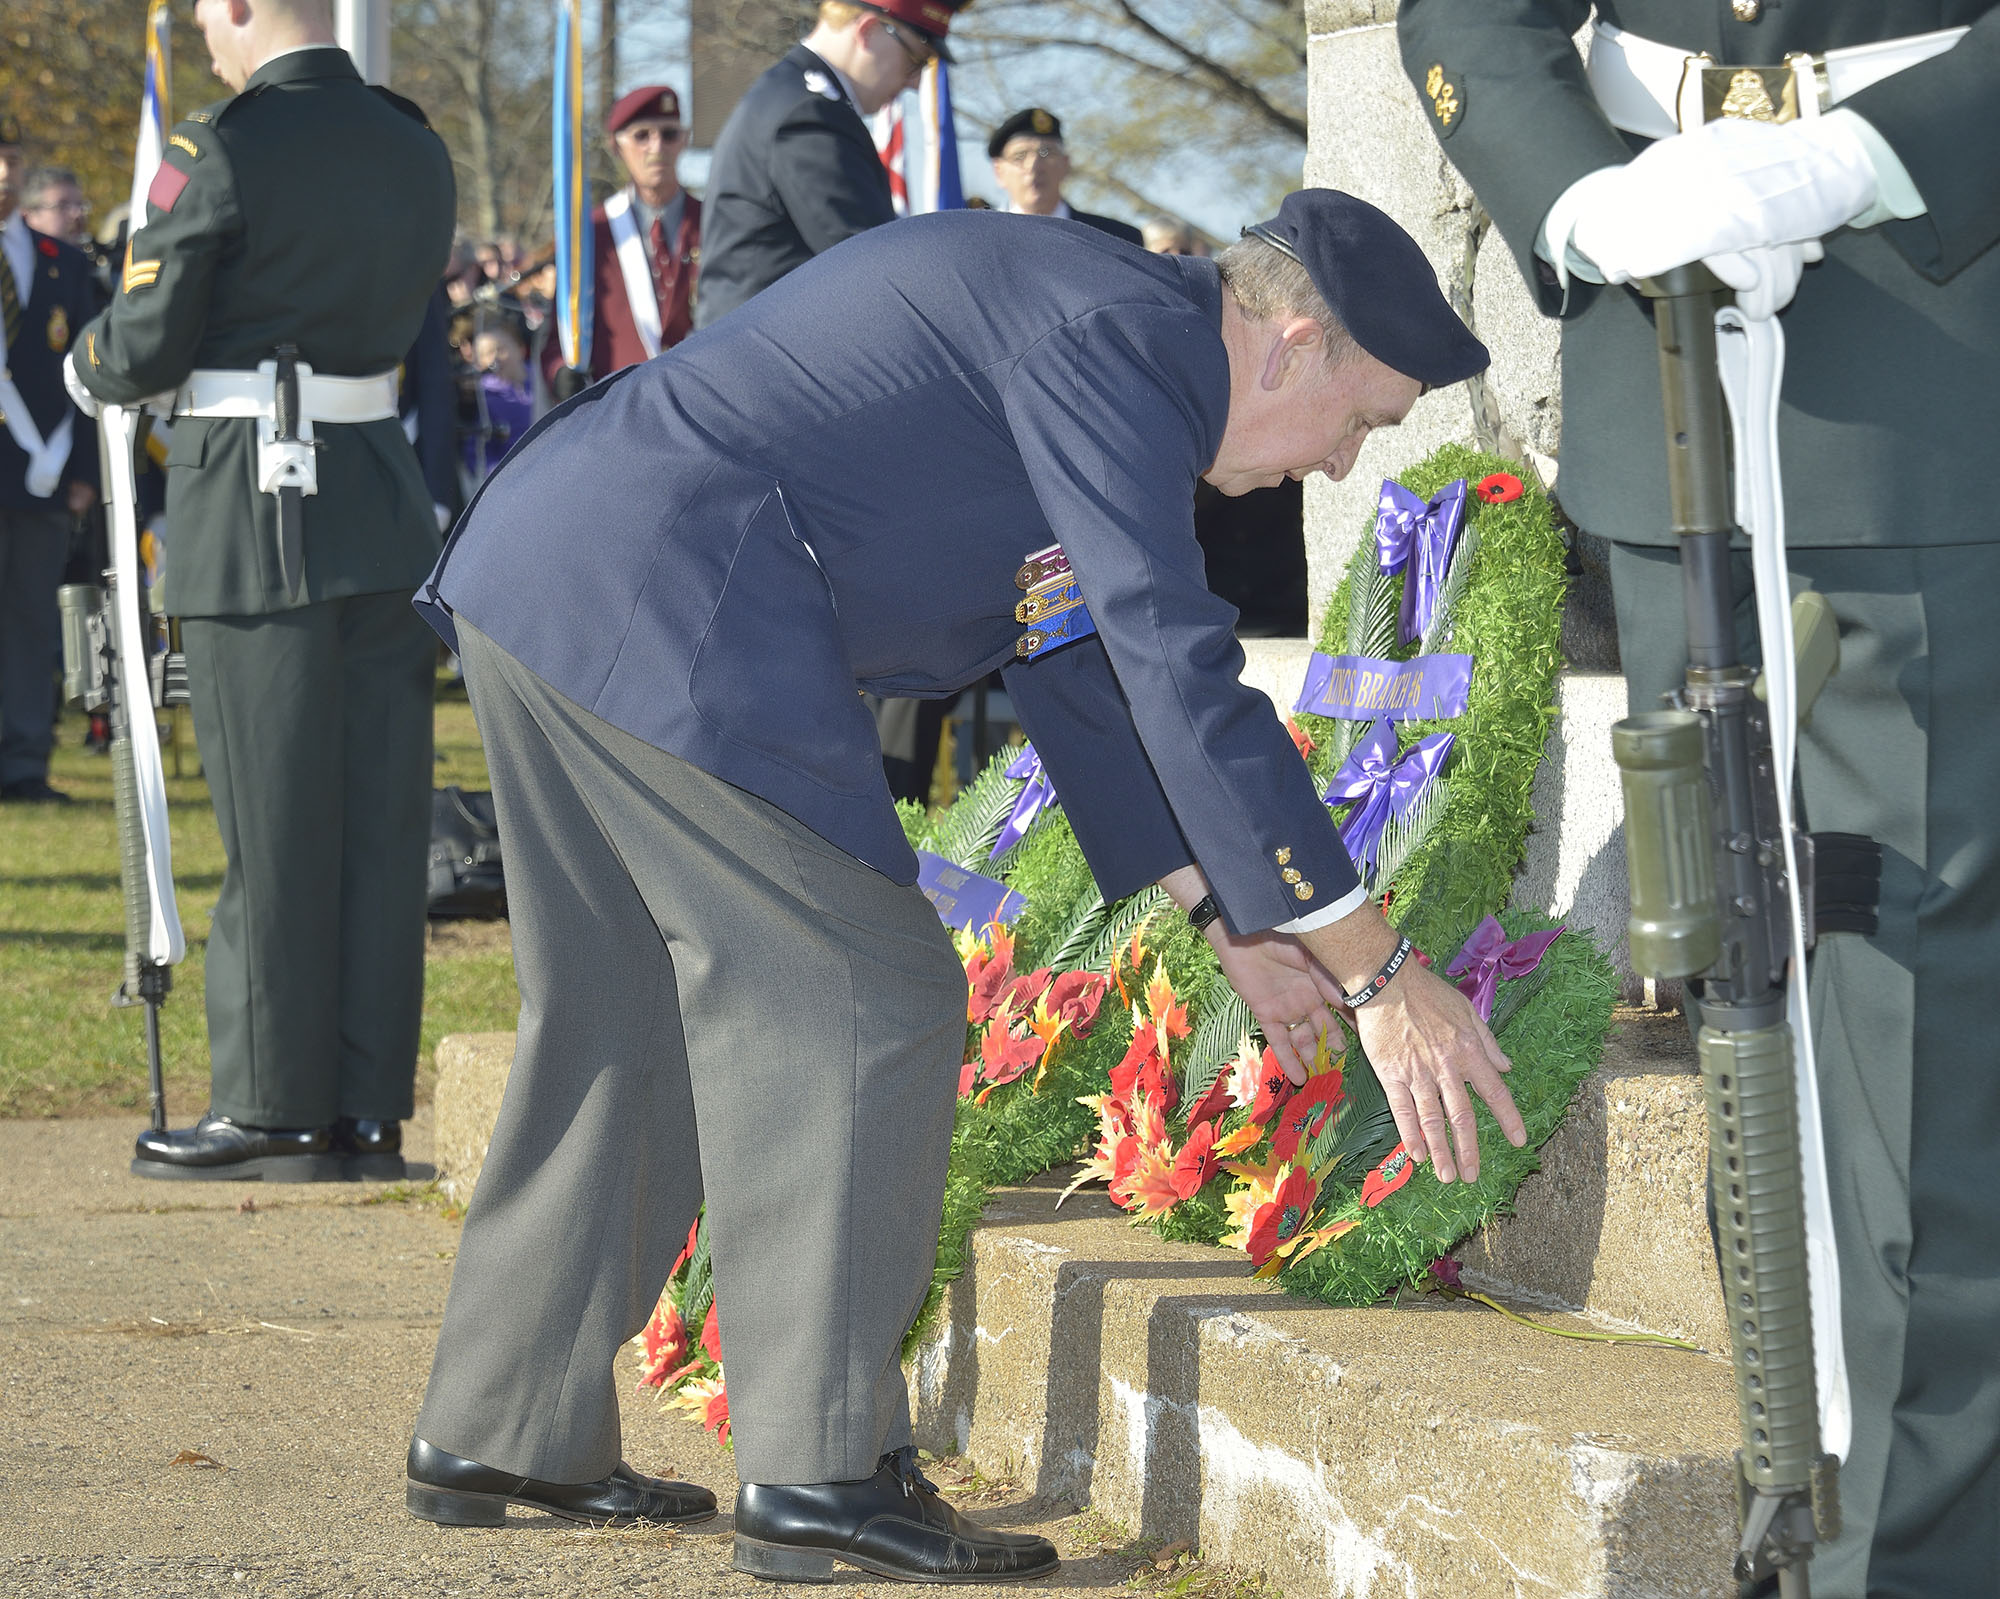 A Kentville, Nova Scotia, veteran and member of the Royal Canadian Legion lays a wreath during the Remembrance Day ceremony held at the Kentville cenotaph on November 11, 2014. PHOTO: Corporal Steve Wilson